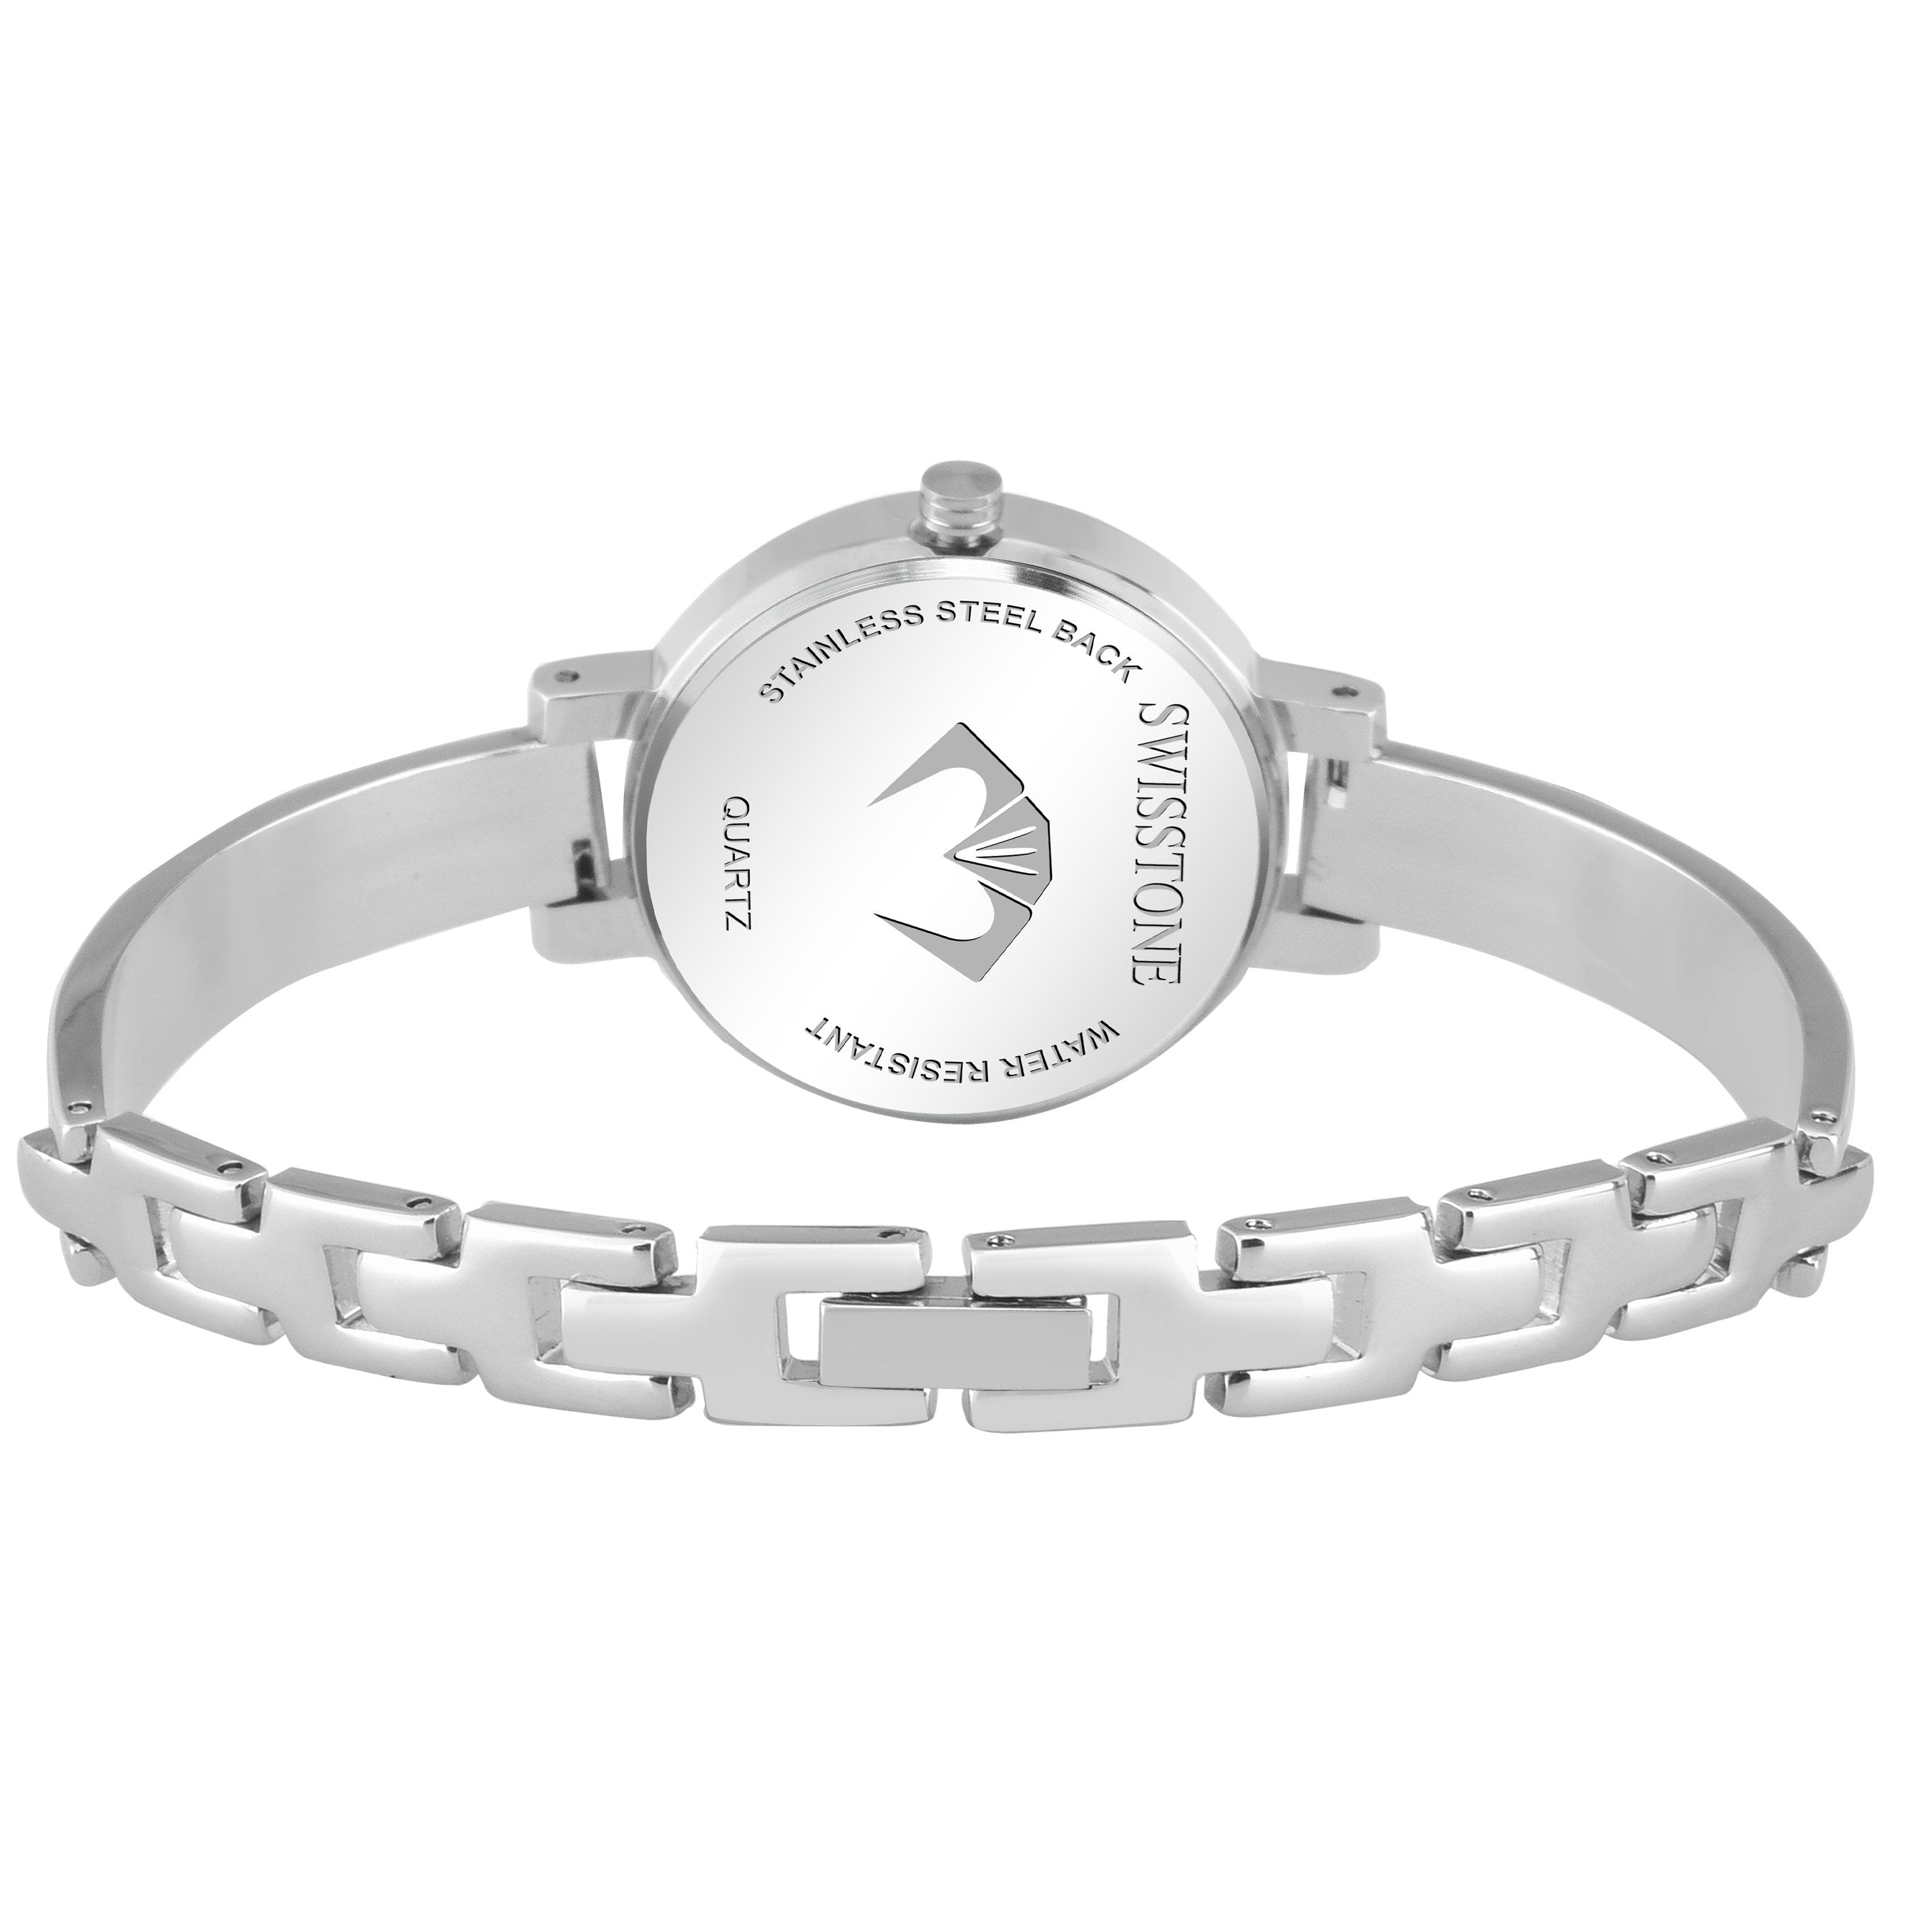 Swisstone JEWELS068-PNKSLV Wrist Watch for Women